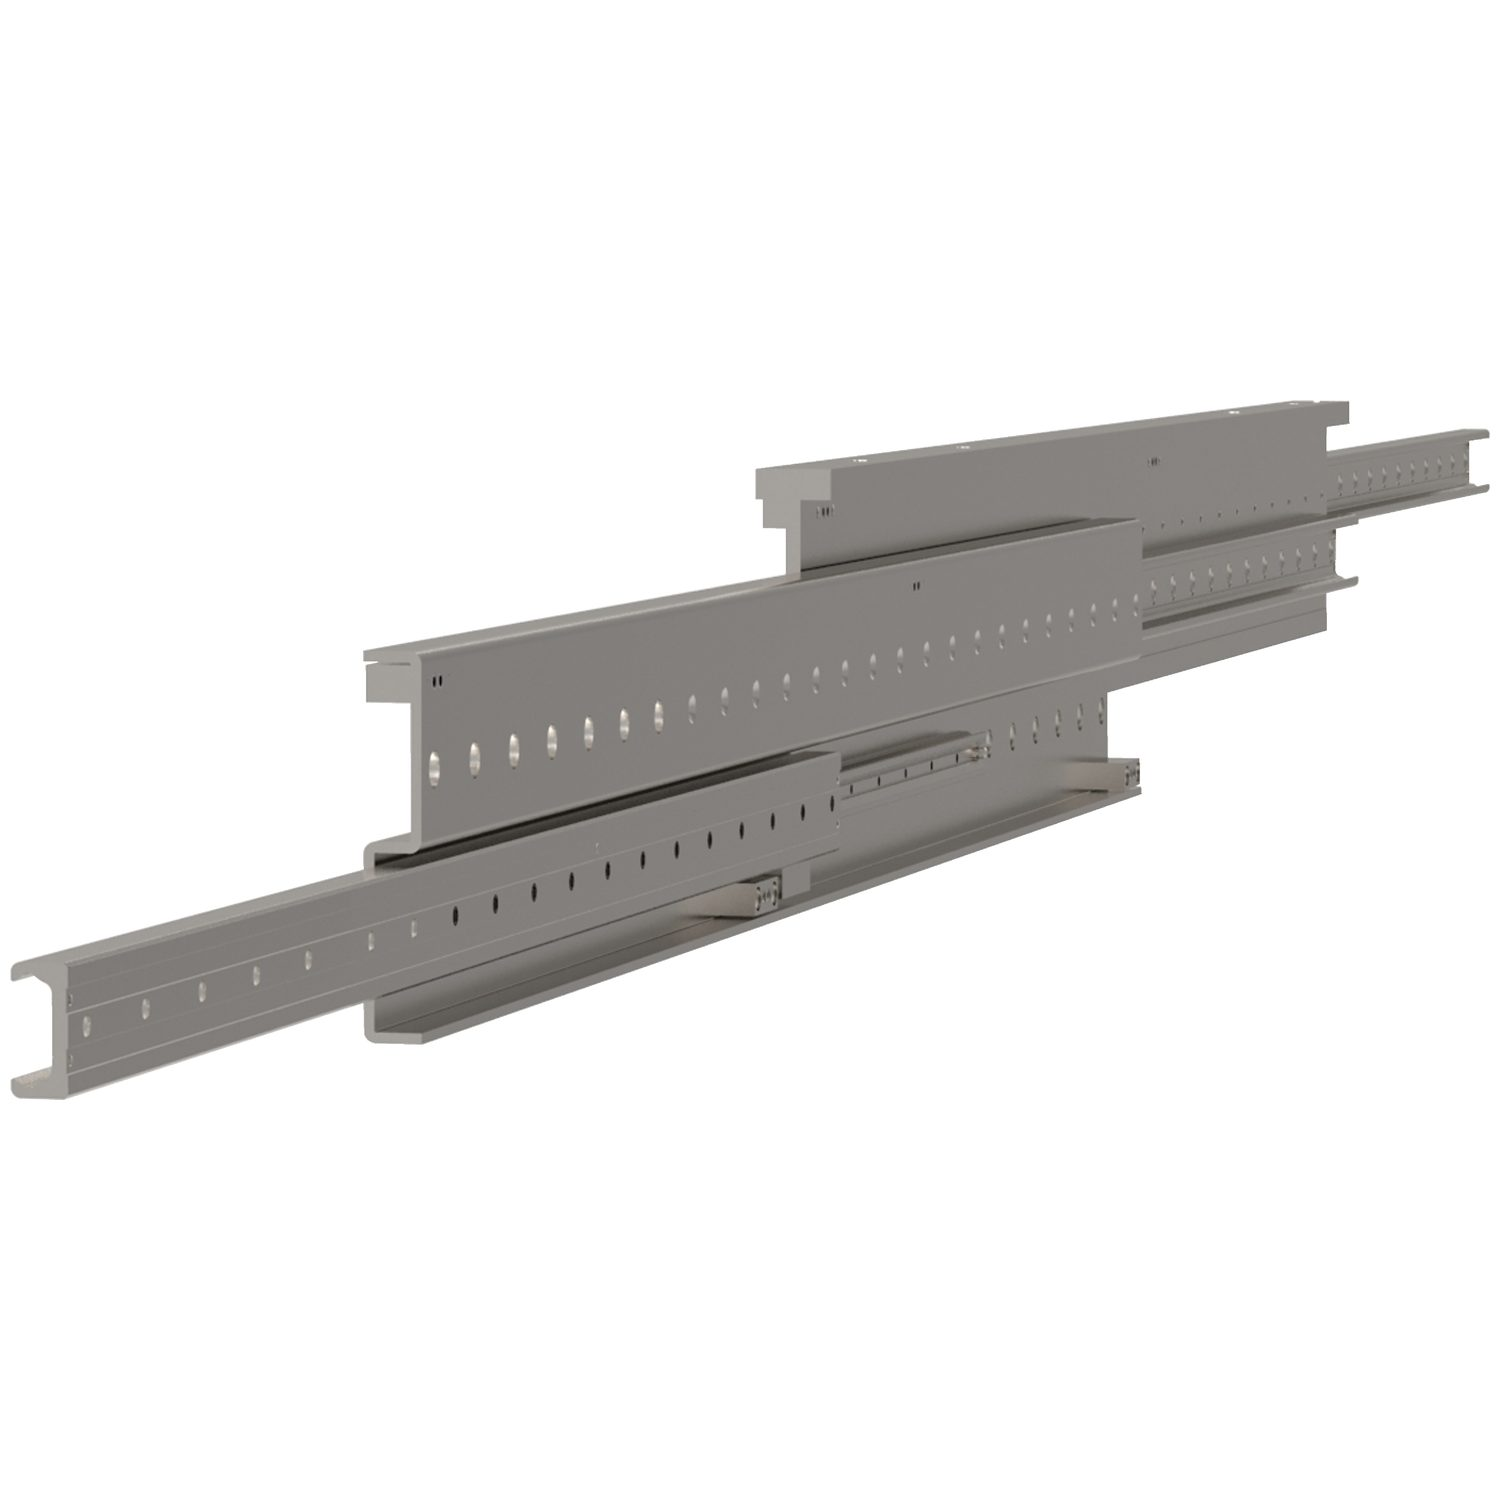 Extended Stroke Telescopic Slides These are extended stroke (150%), heavy duty telescopic rails.